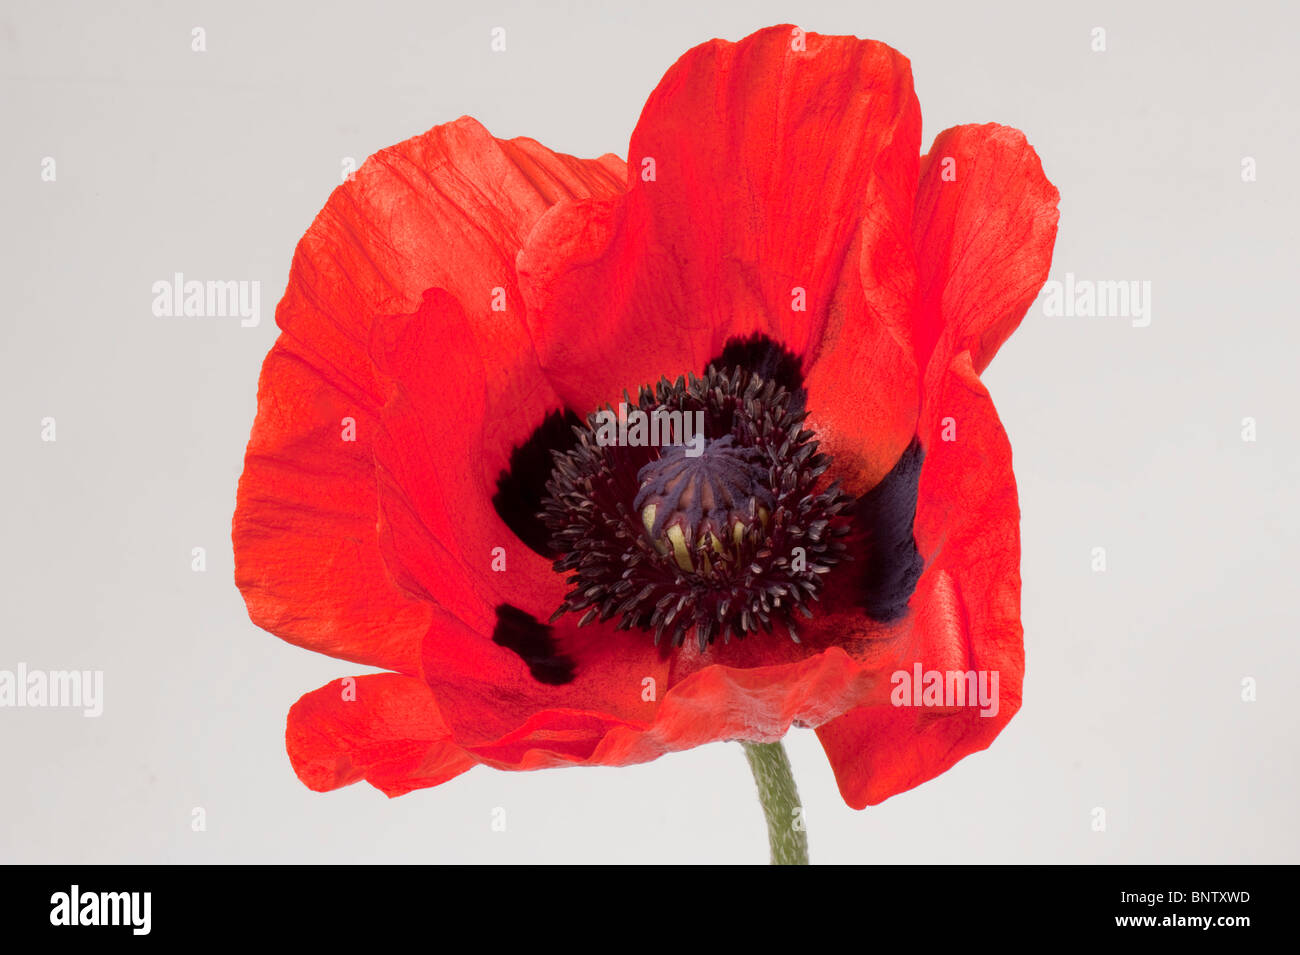 Bright red flower of an oriental poppy (Papaver orientalis) against a white background - Stock Image